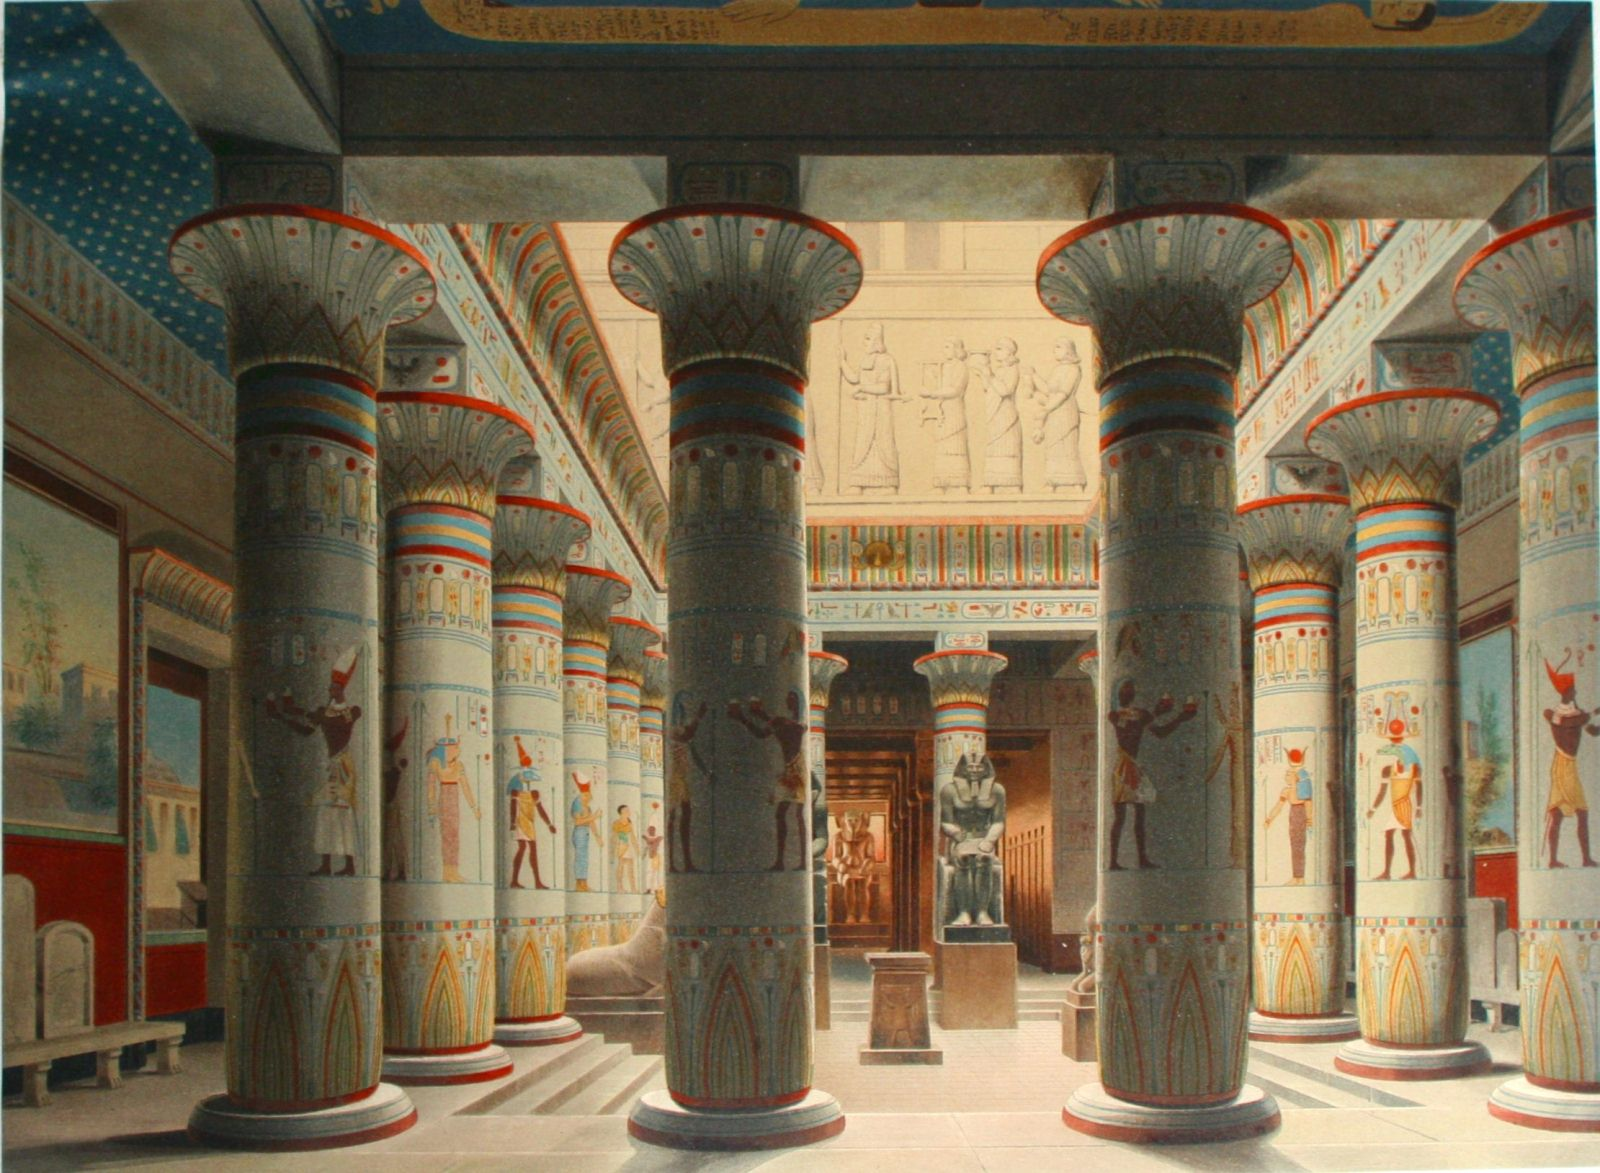 Neues Museum, Berlin, Germany, Egyptian hall with columns